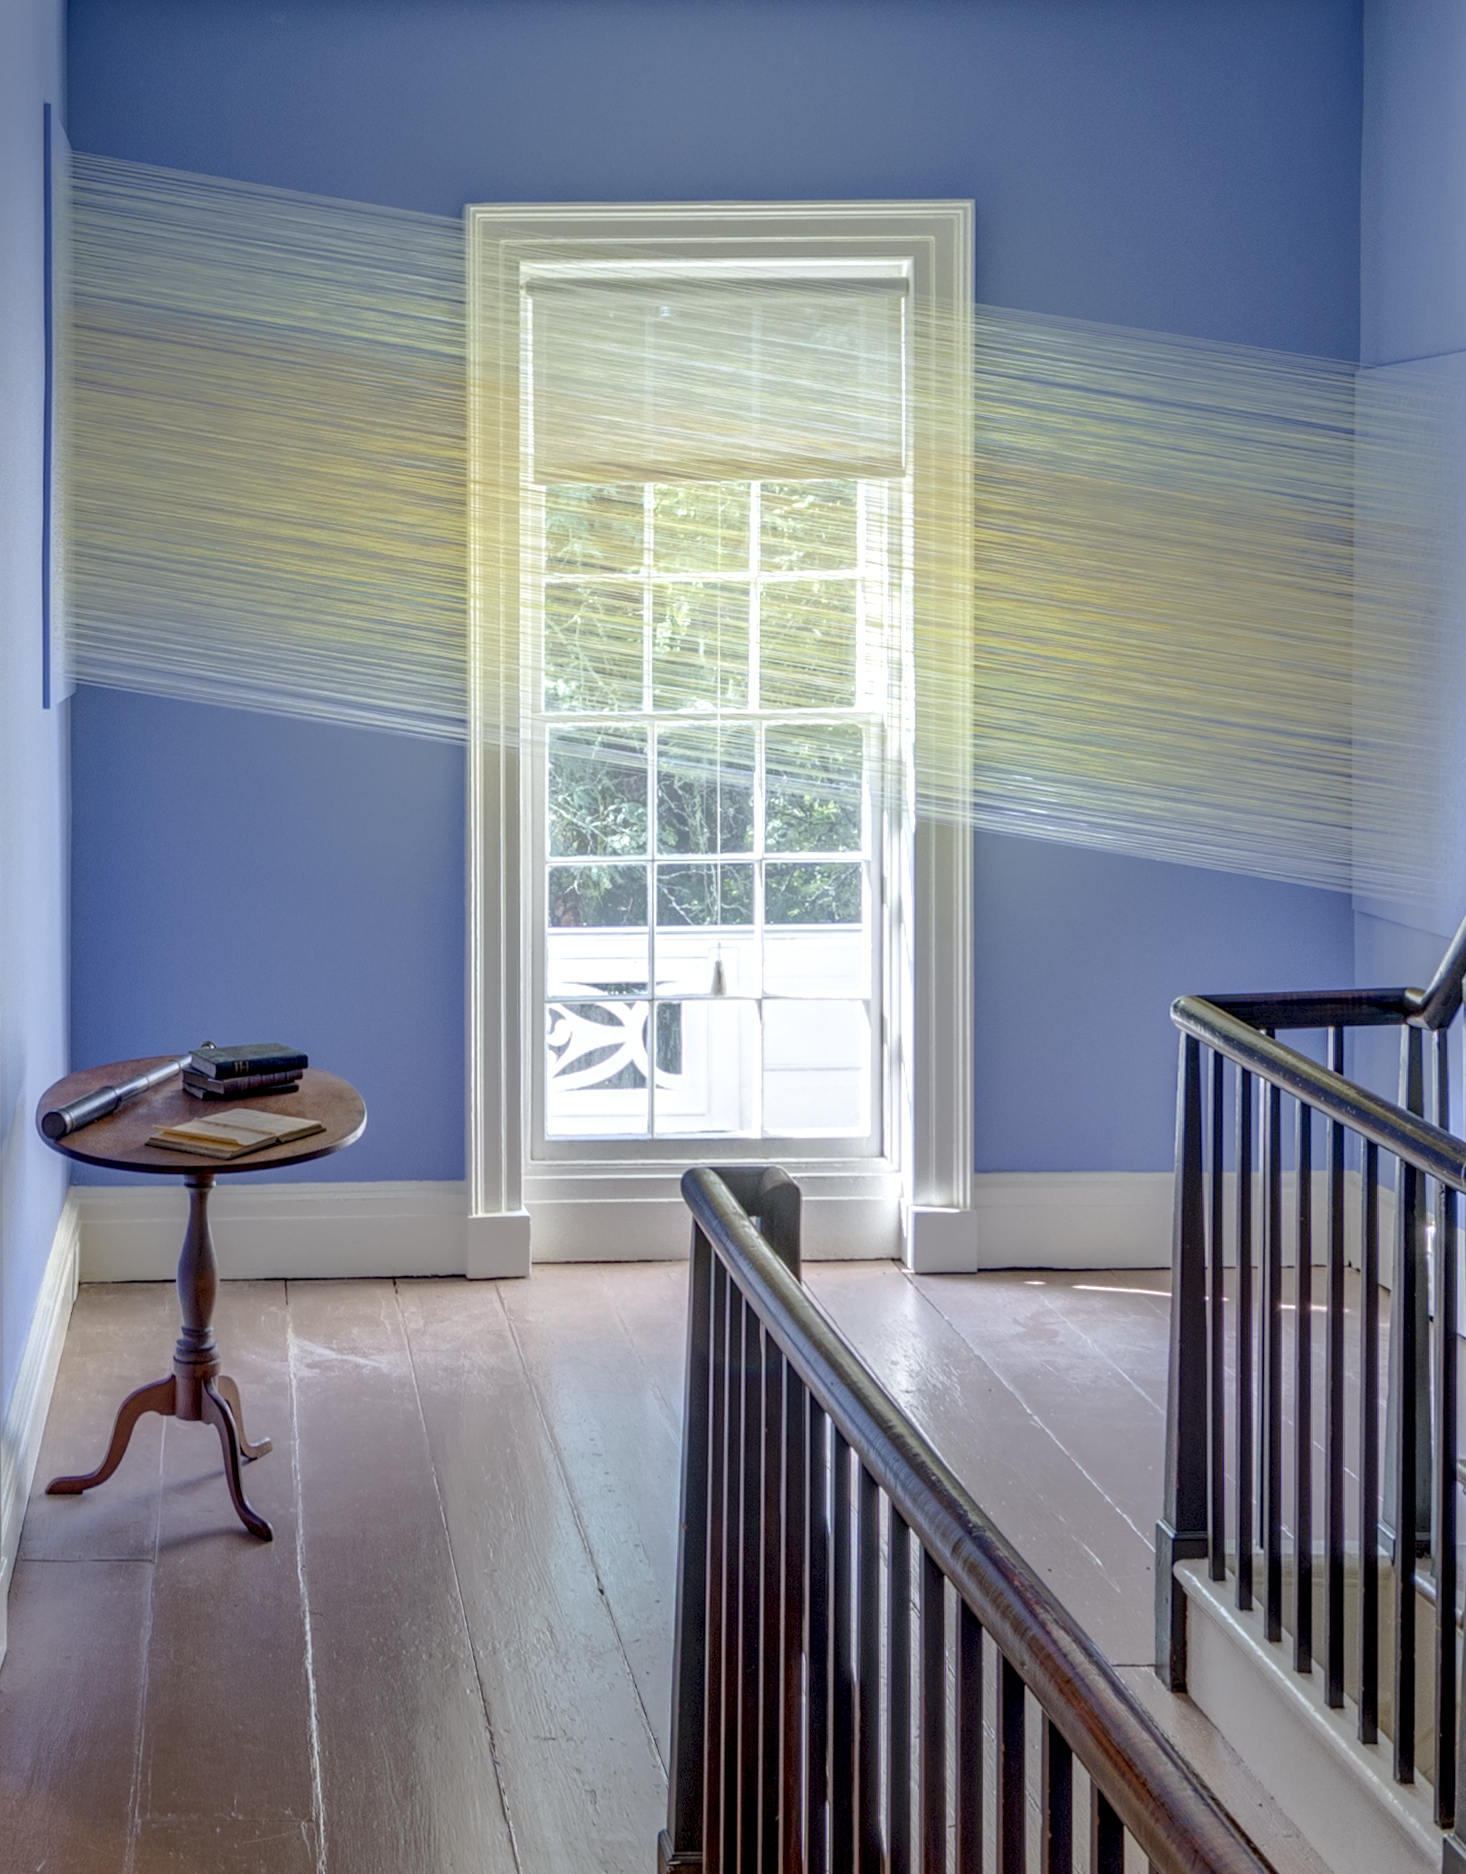 Anne Lindberg ,  sun come purple,  2018, thread staples at Thomas Cole National Historic Site, Catskill, NY - Photography Credit: © Peter Aaron / OTTO